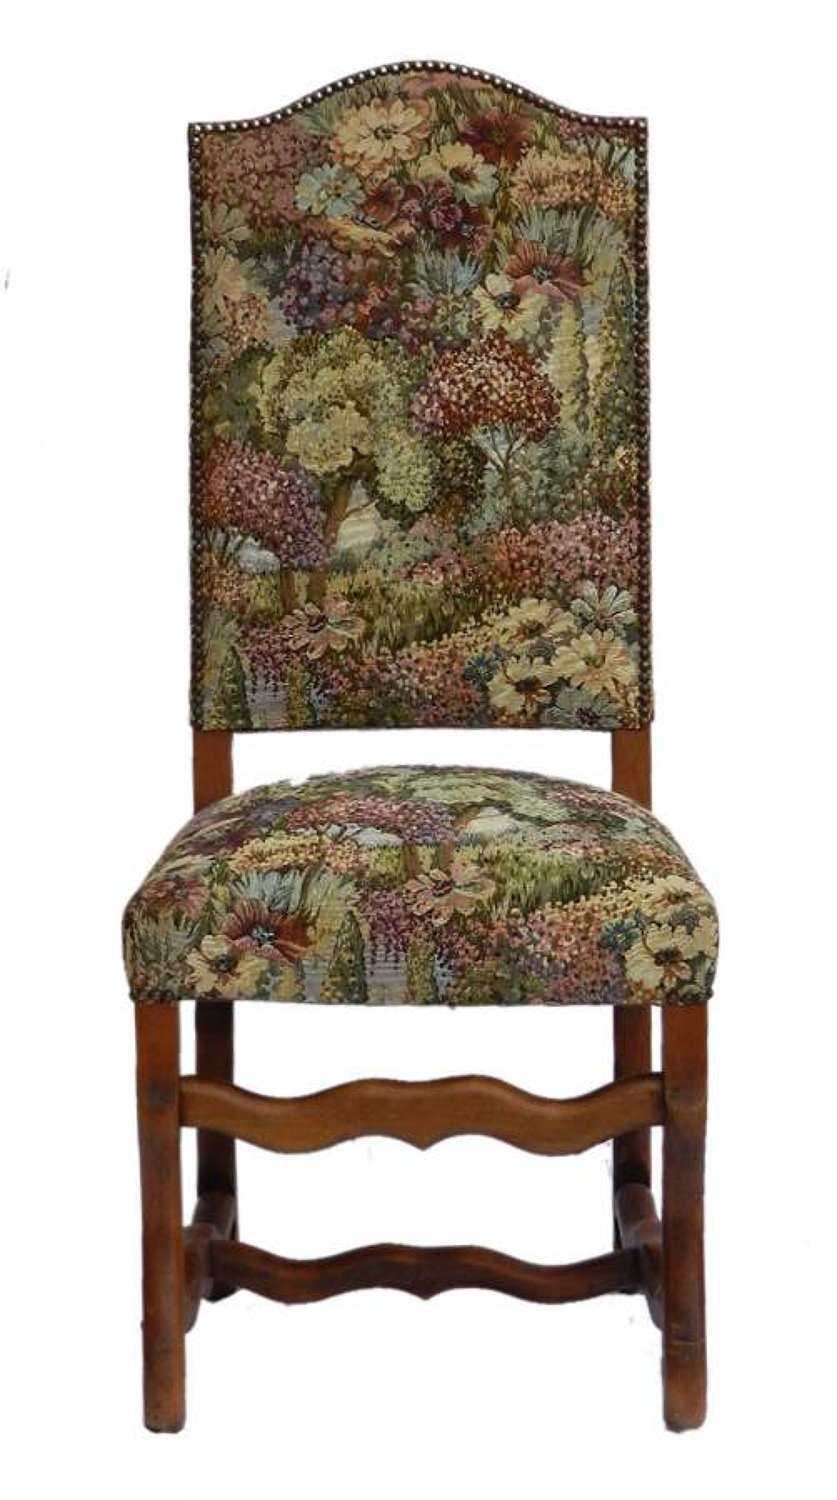 6 French Dining Chairs Os de Mouton